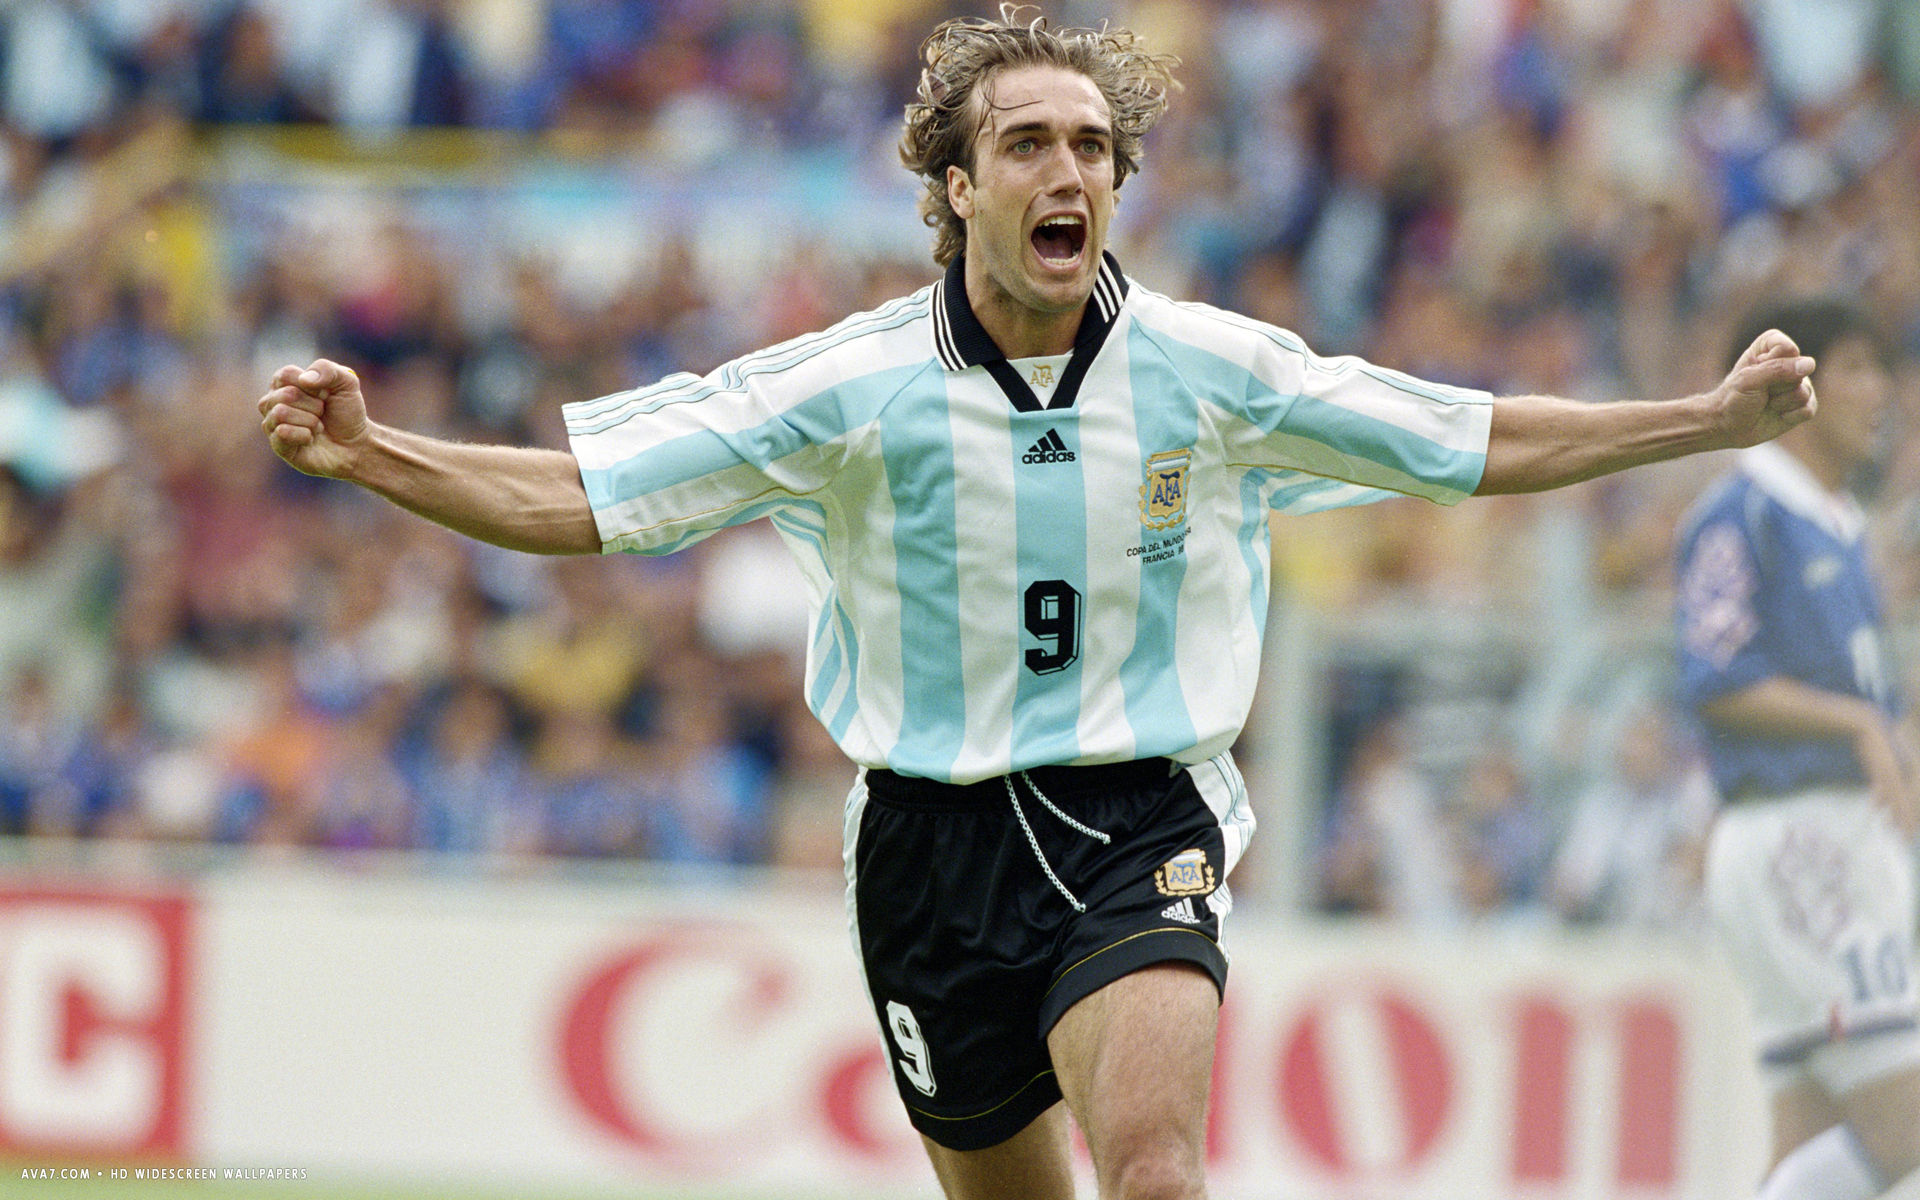 Wallpapers Hd 1920x1080 3d Gabriel Batistuta Football Player Hd Widescreen Wallpaper